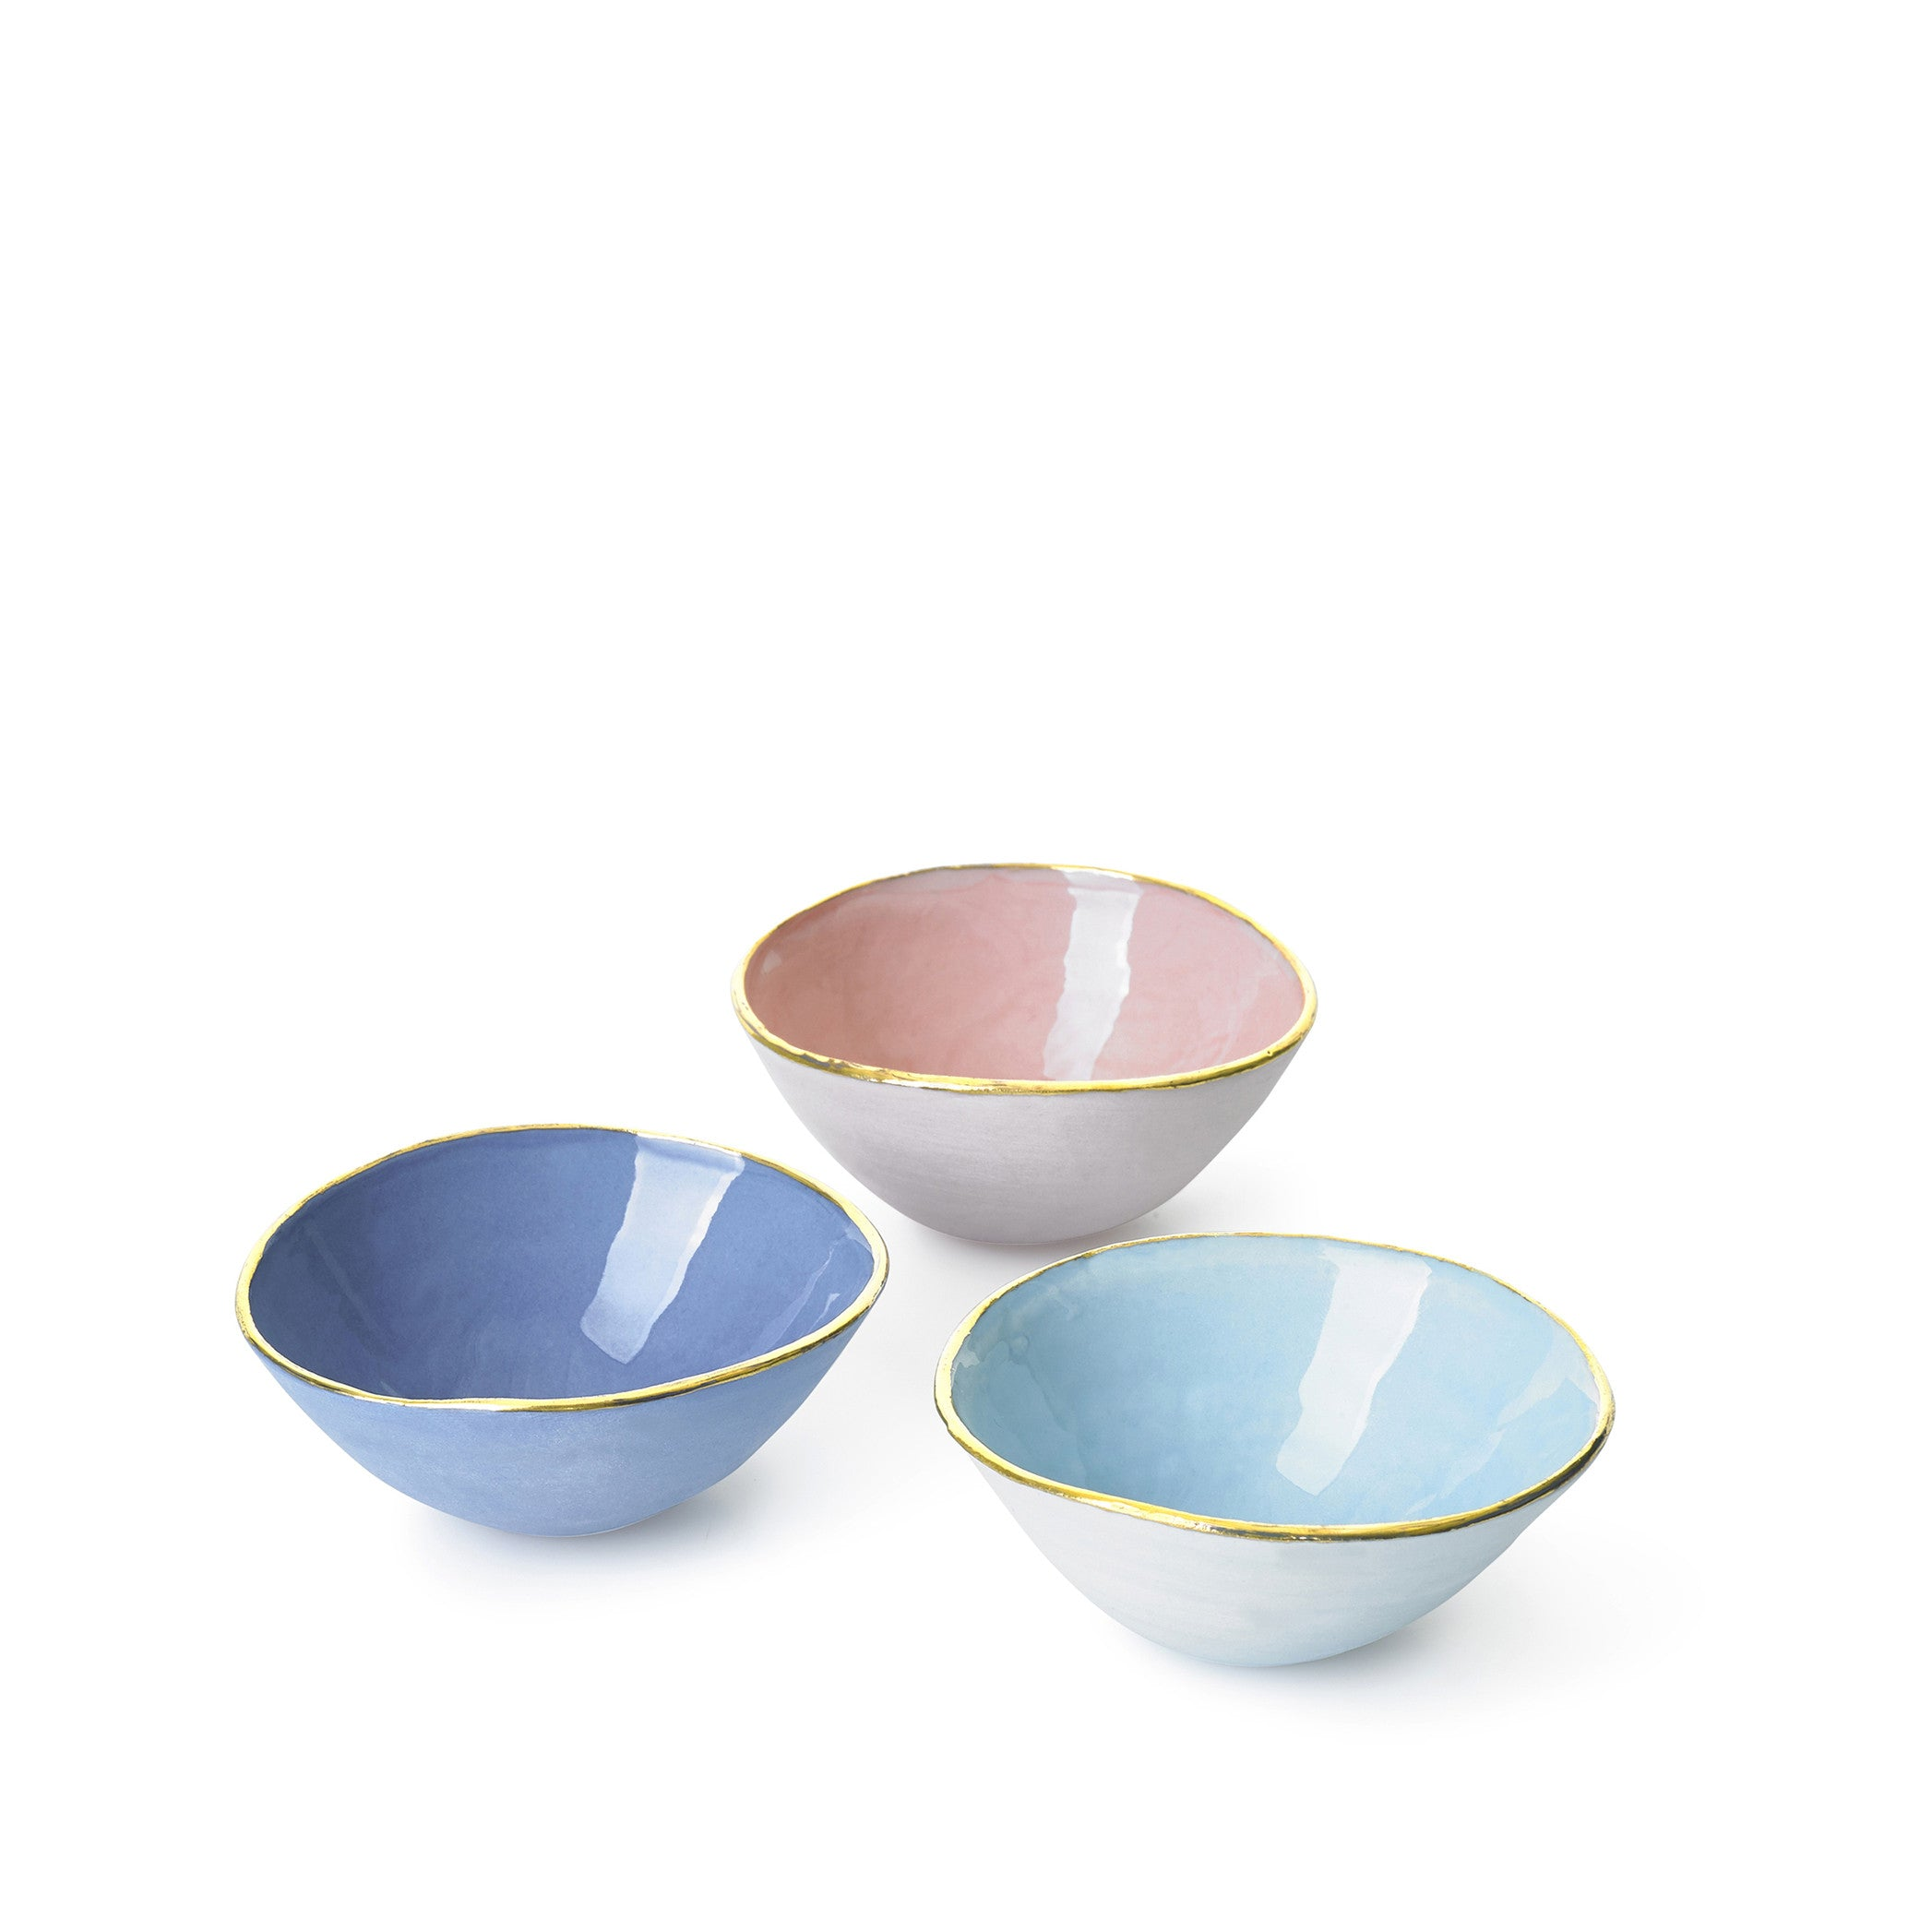 Full Painted Pink Ceramic Bowl with Gold Rim, 6cm